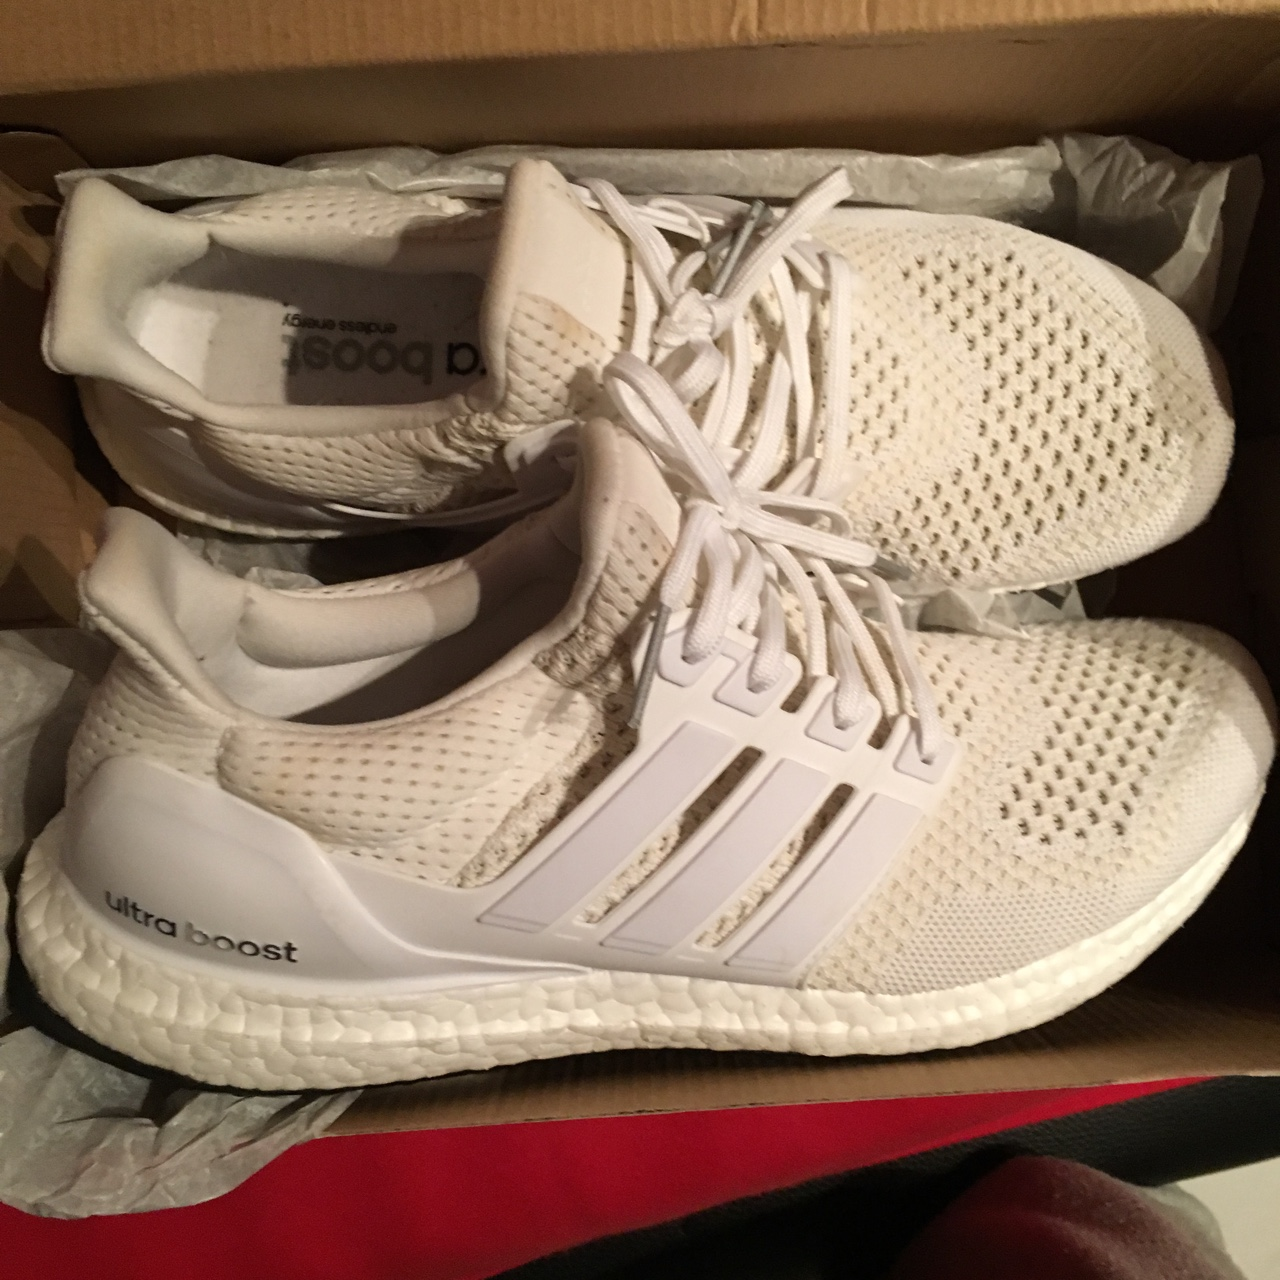 Adidas Ultra Boost 1.0 US9.5, dm me for more Depop